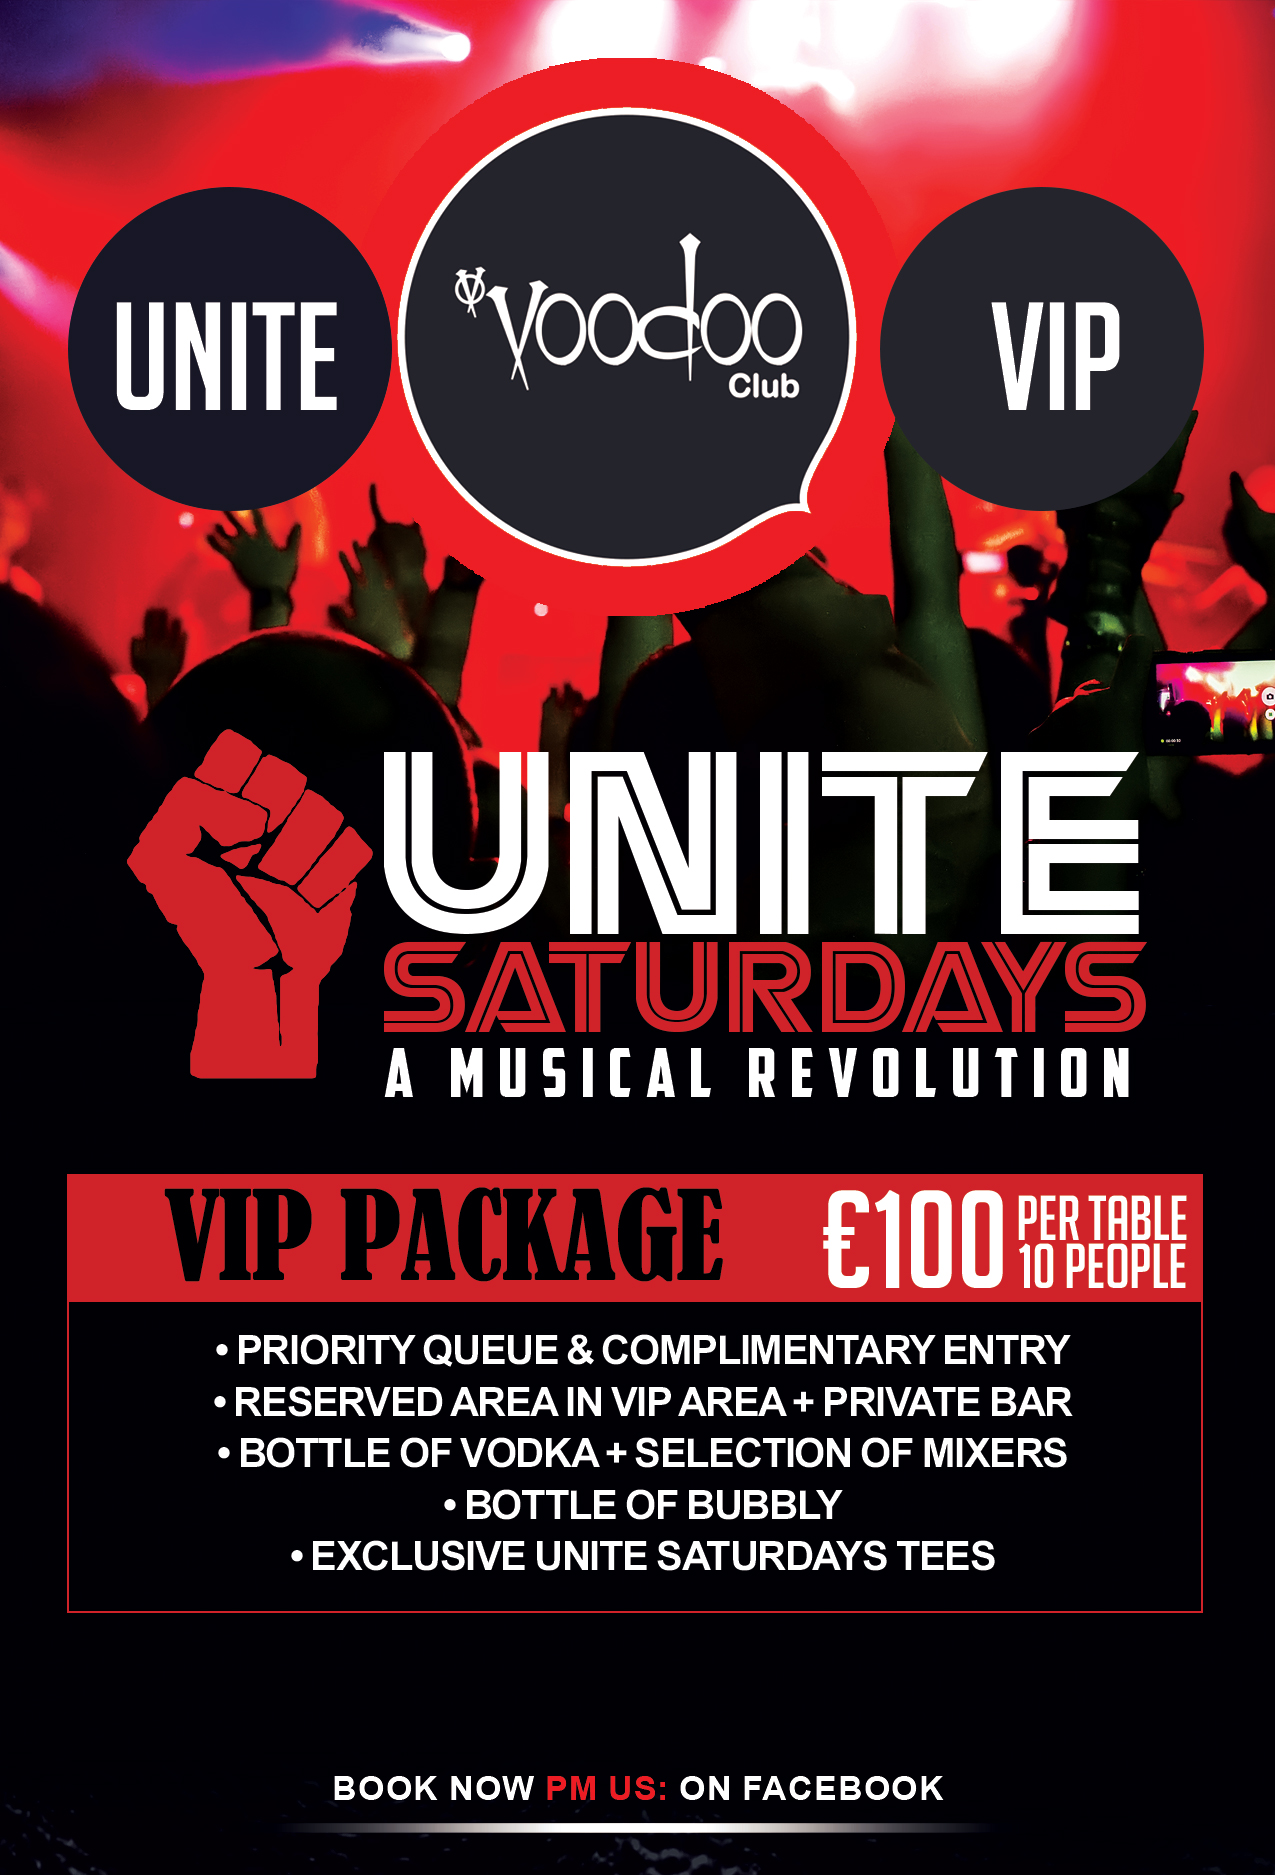 voodoo-club-unite-saturdays-vip-package-feb-2019 (1).jpg